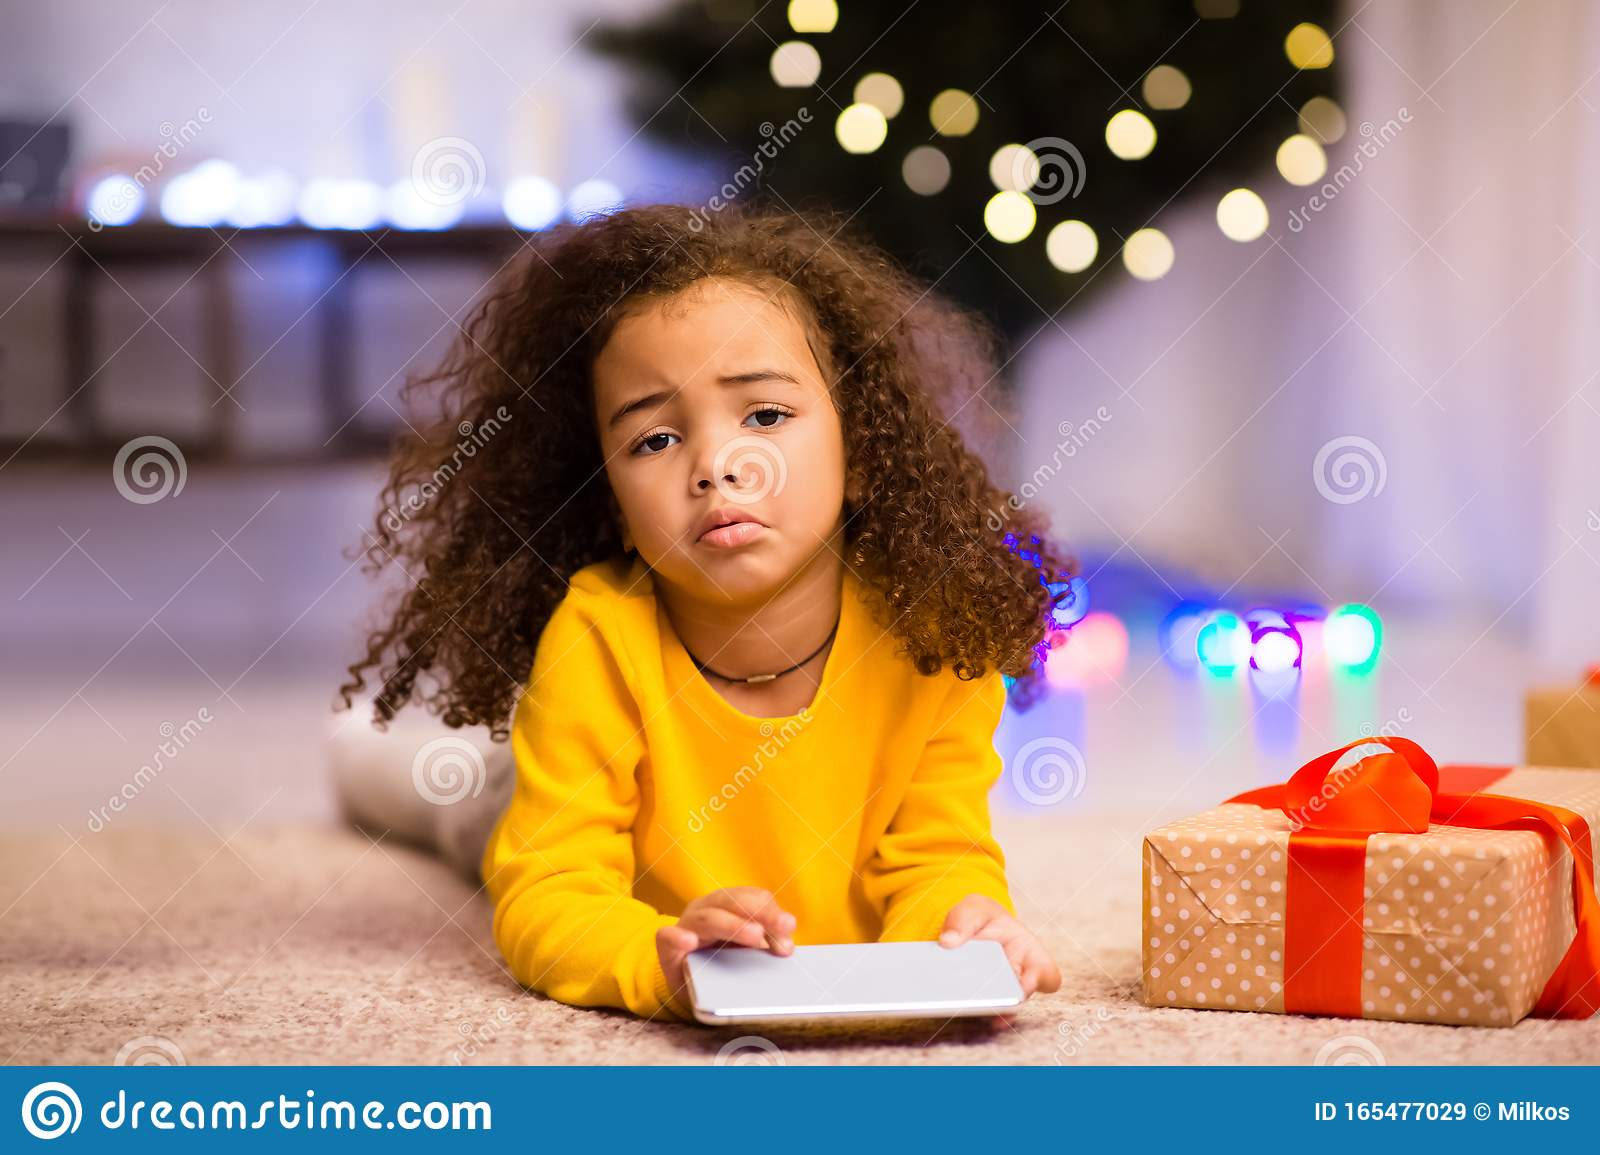 Sad African Little Girl With Unwanted Christmas Gift Cellphone Stock Image - Image of ...